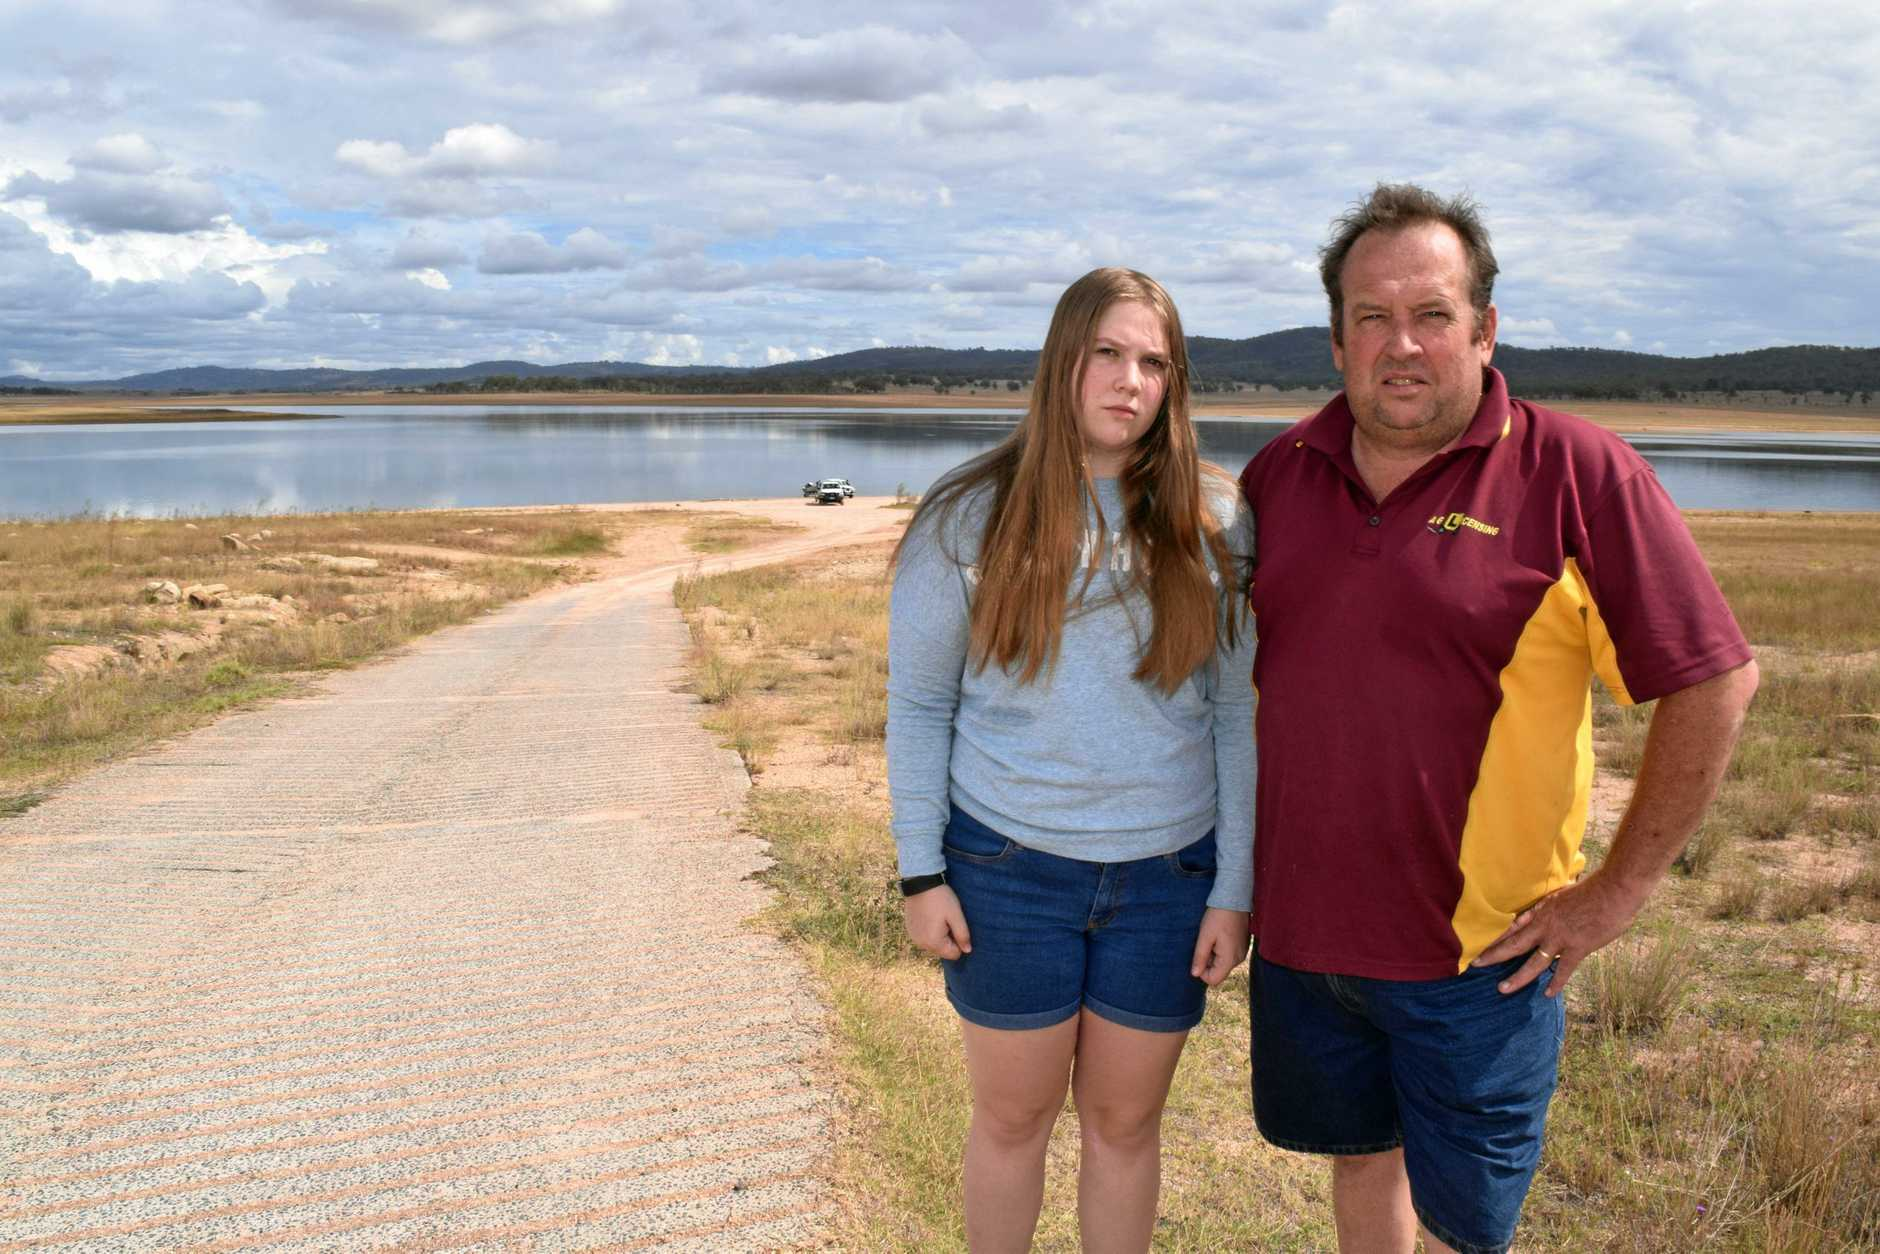 Andrew Gale, with daughter Amy. Mr Gale was happy council approved the boat ramp but said the funding came from the wrong source.